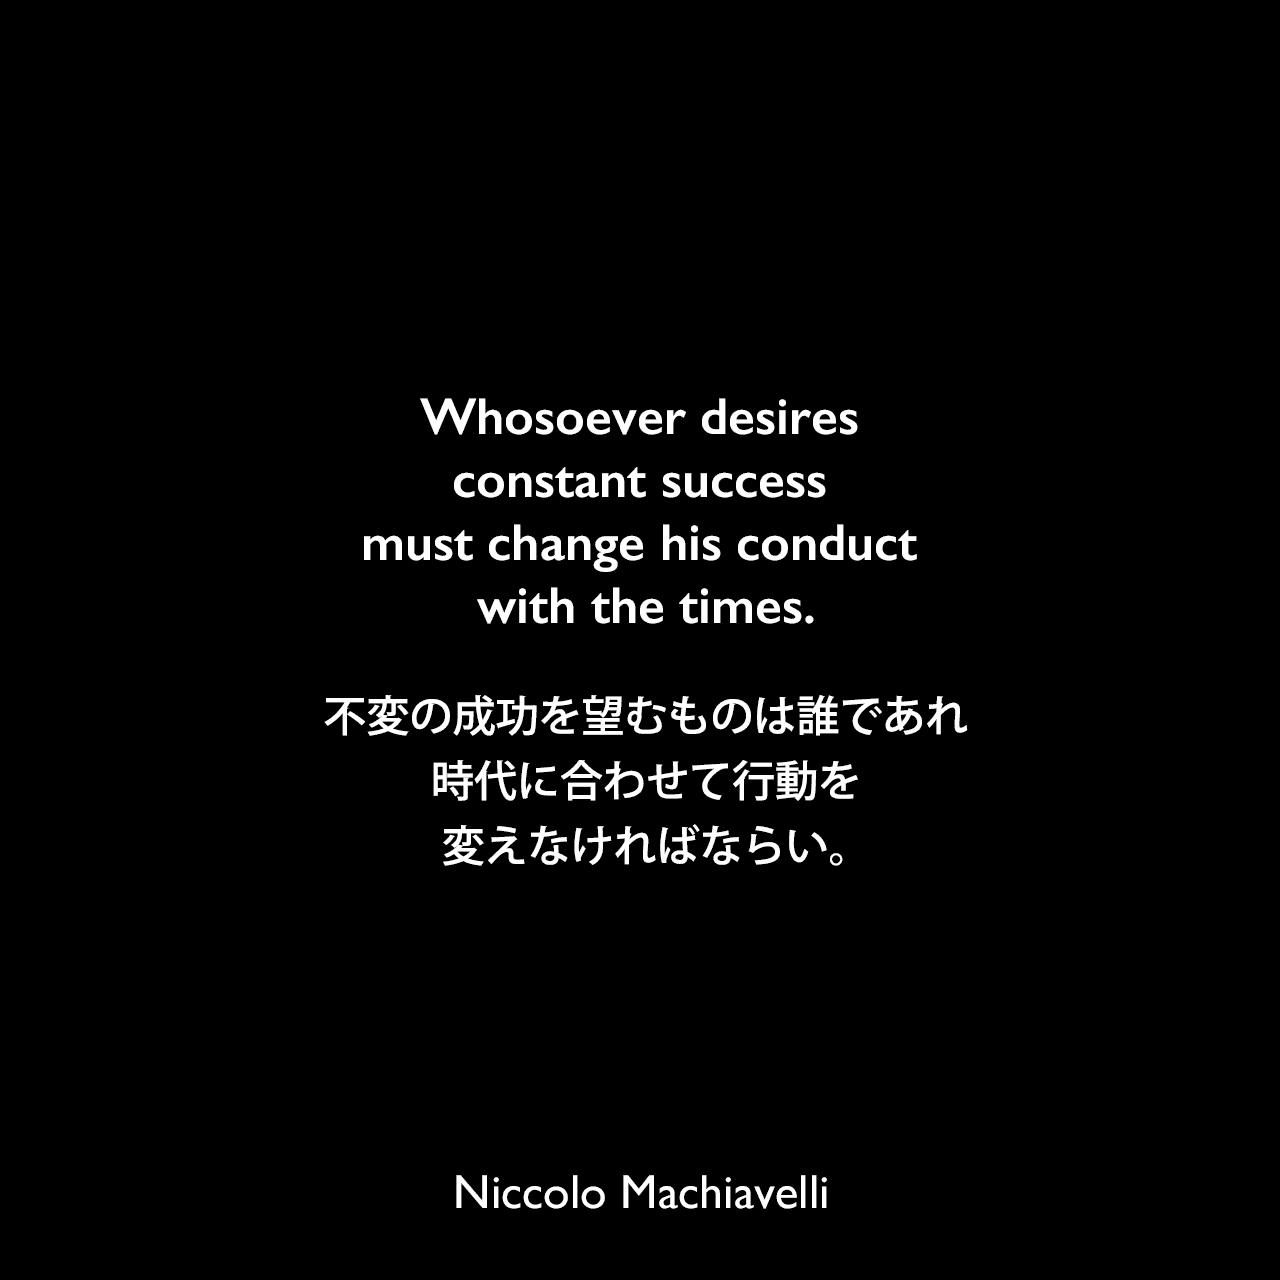 Whosoever desires constant success must change his conduct with the times.不変の成功を望むものは誰であれ、時代に合わせて行動を変えなければならい。Niccolo Machiavelli